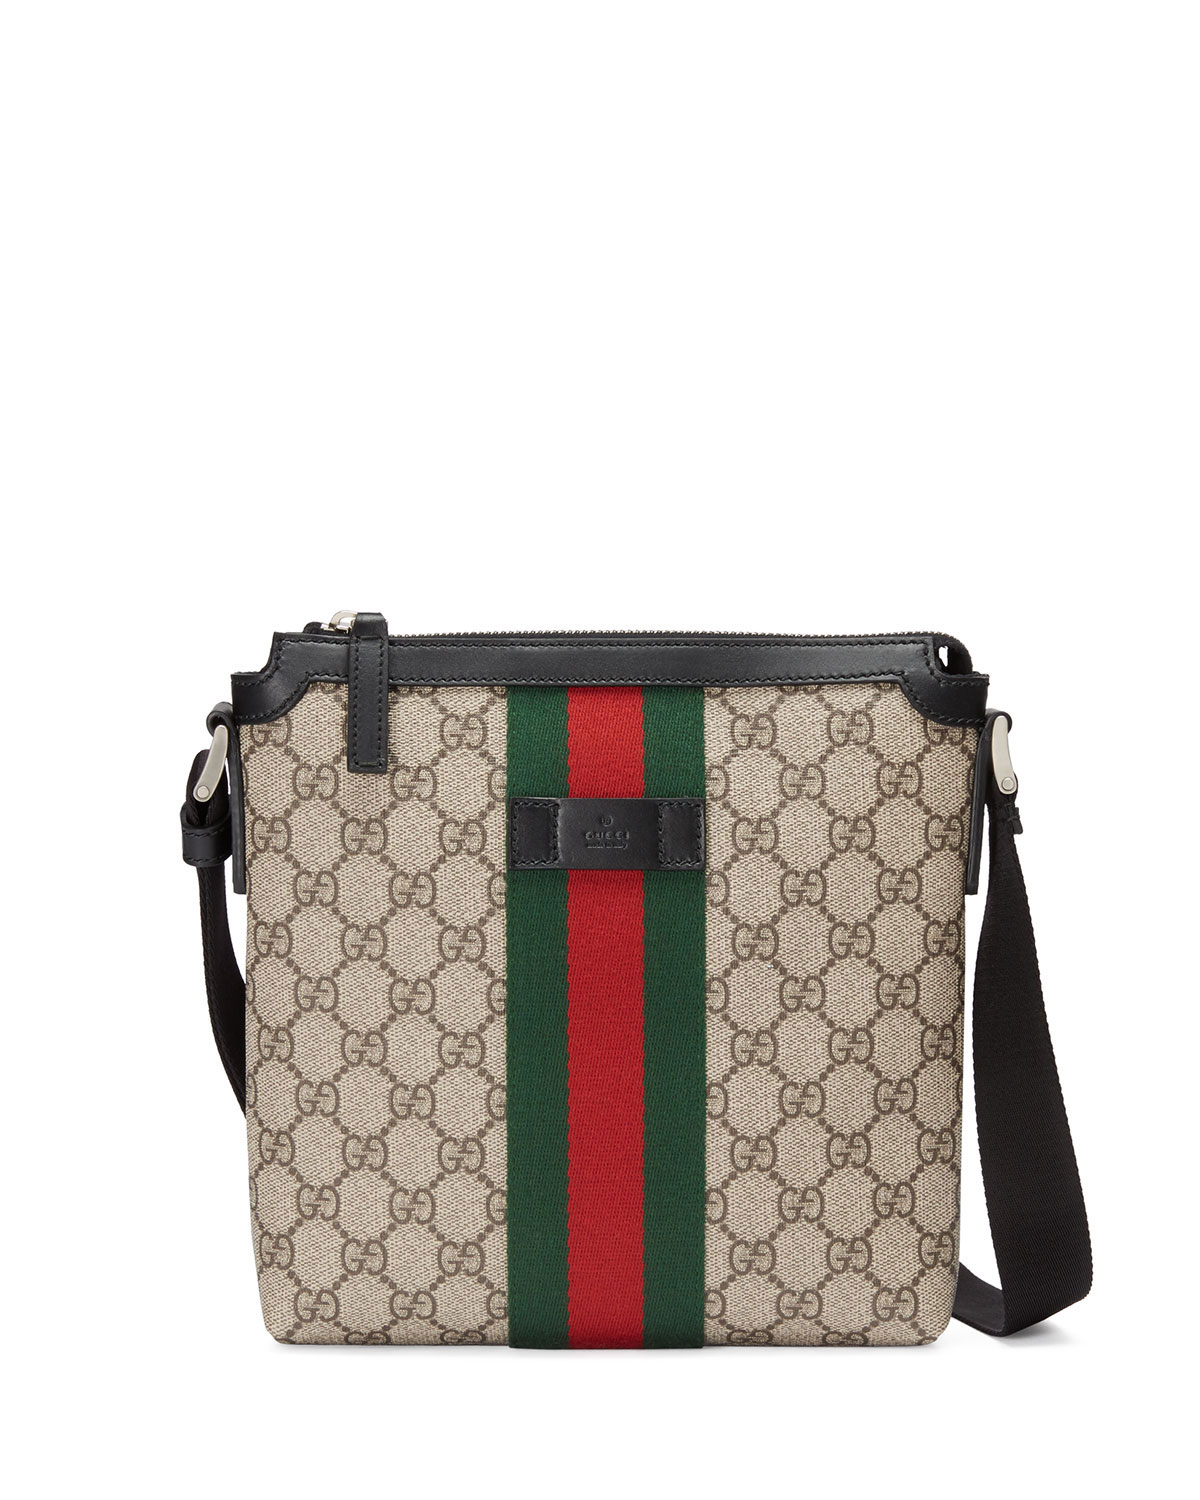 c67f888542ee Gucci GG Supreme Web Small Zip-Top Crossbody Bag, Light Beige ...